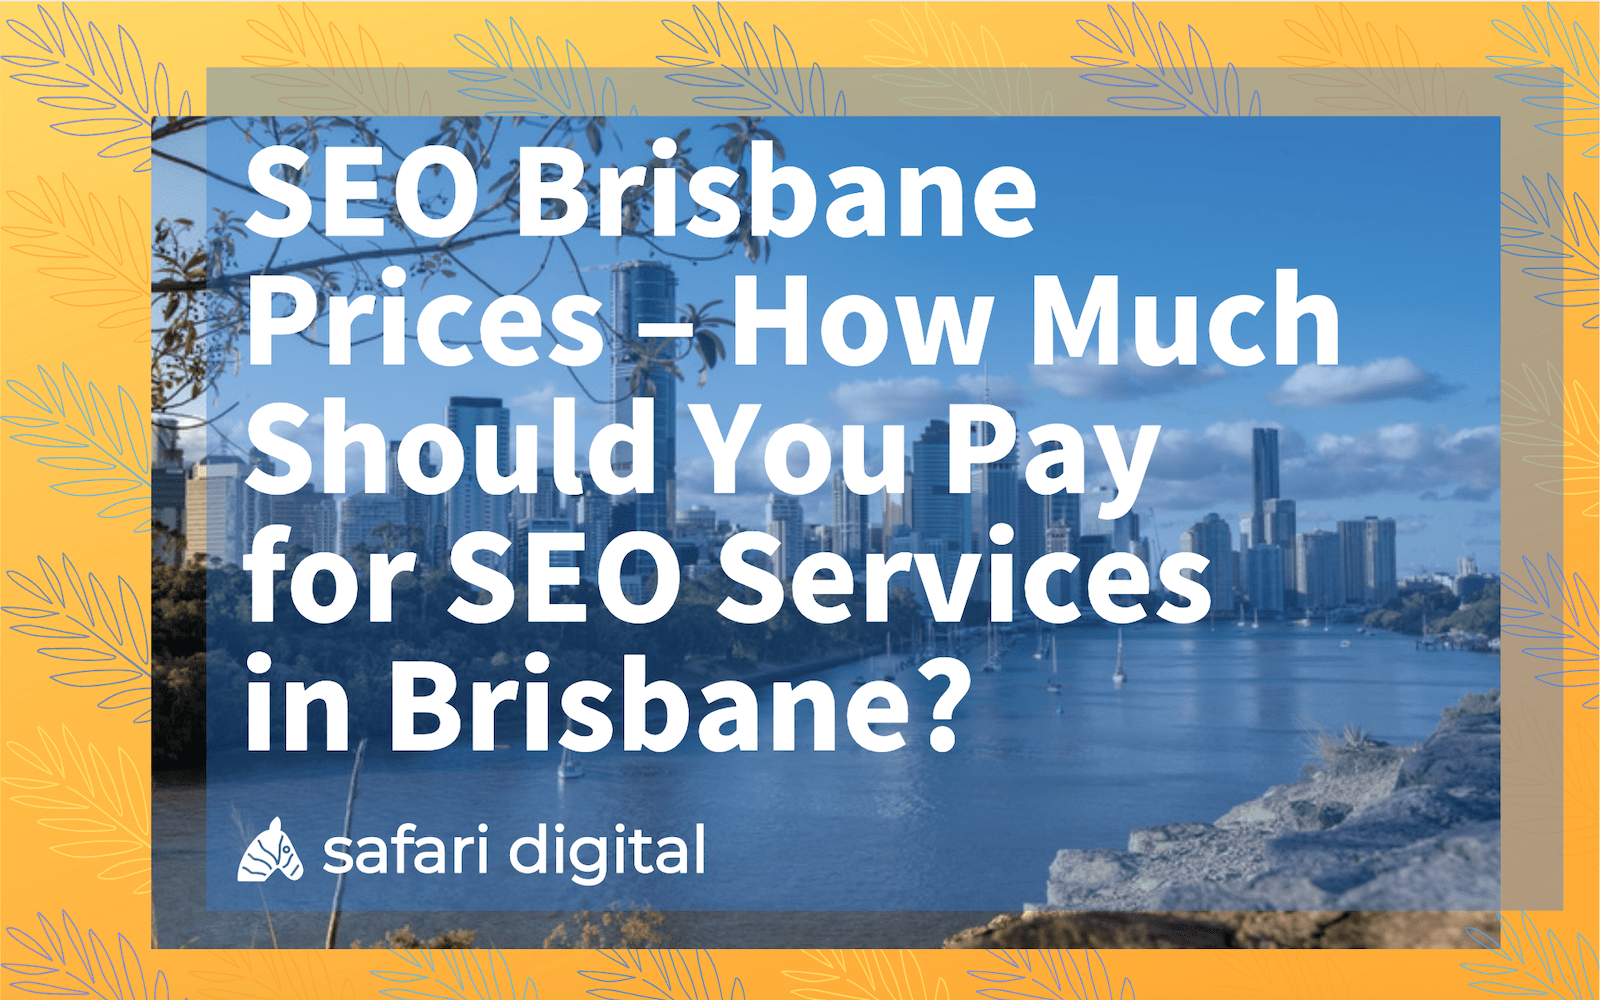 SEO Brisbane Services cover image